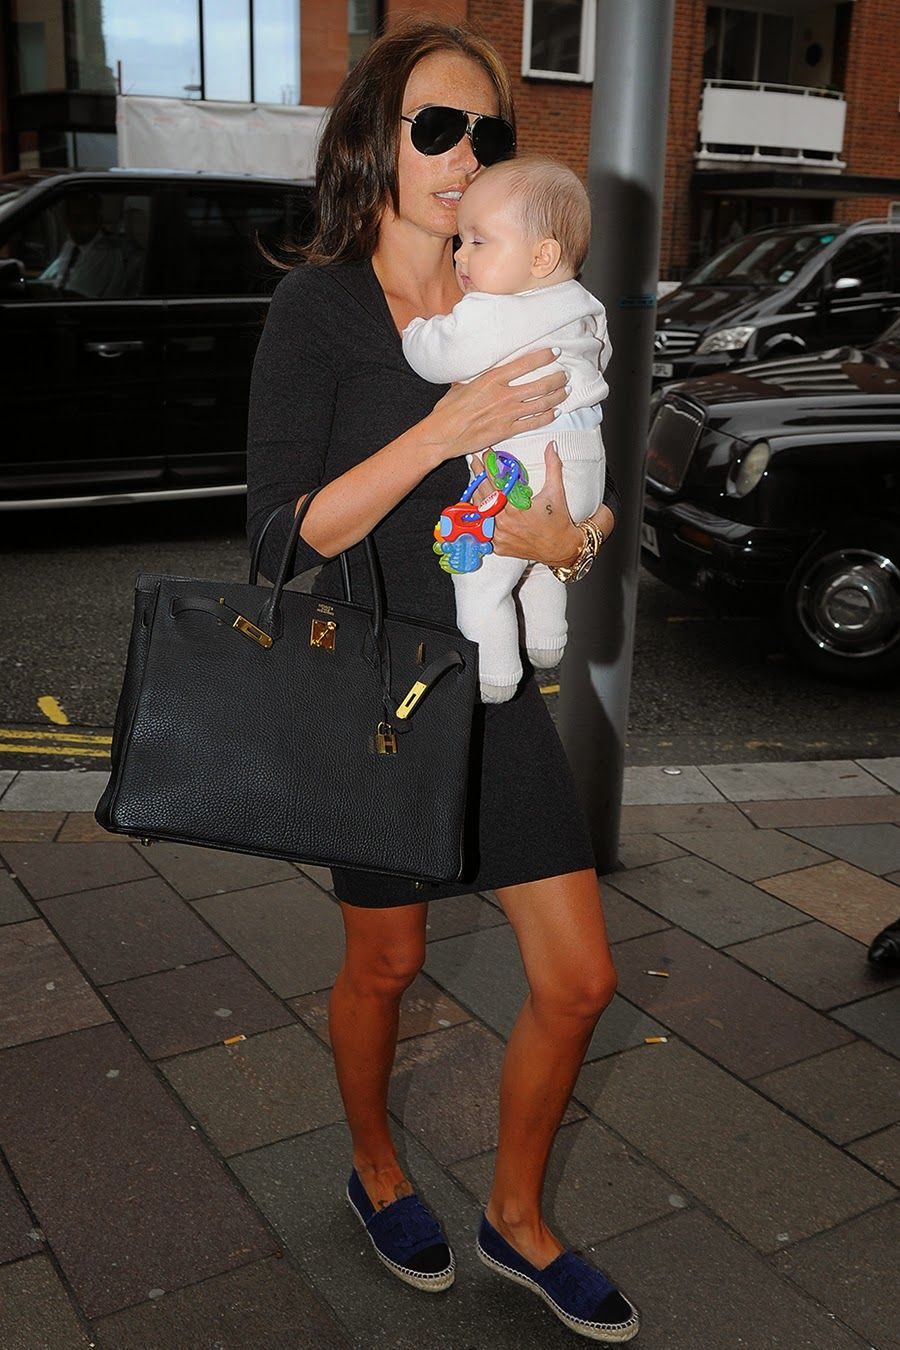 Tamara ecclestone leather pants tamara ecclestone leather dress tamara - Tamara Ecclestone Shopping At Harrods In London England September 2014 The Trend Diaries